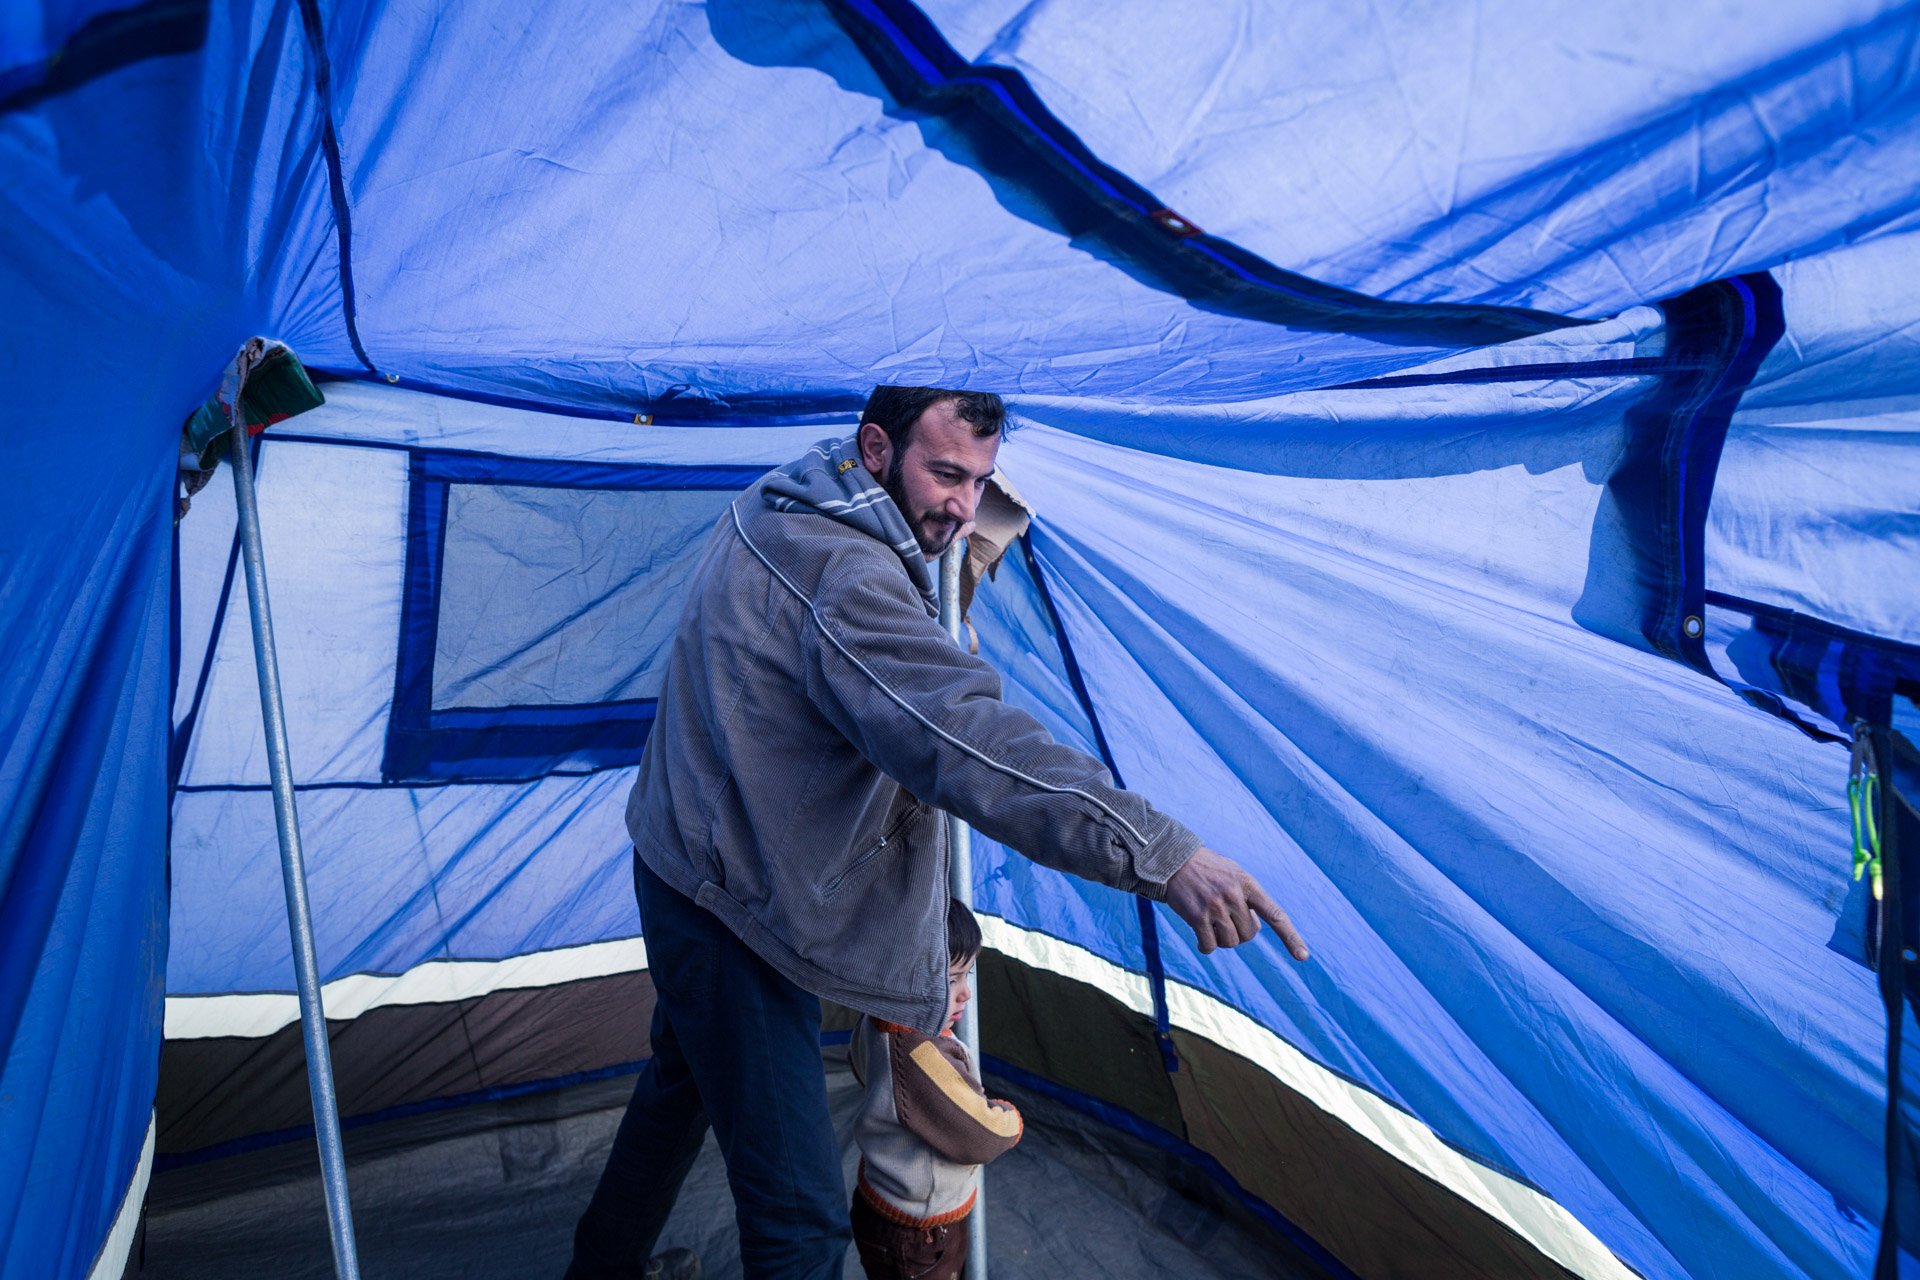 After the amount of refugees in Idomeni passed the mark of 10.000 people, Basem decided to move the tents. Also, he found a big broken tent, repaired it and set it up further away from the border to have more privacy.